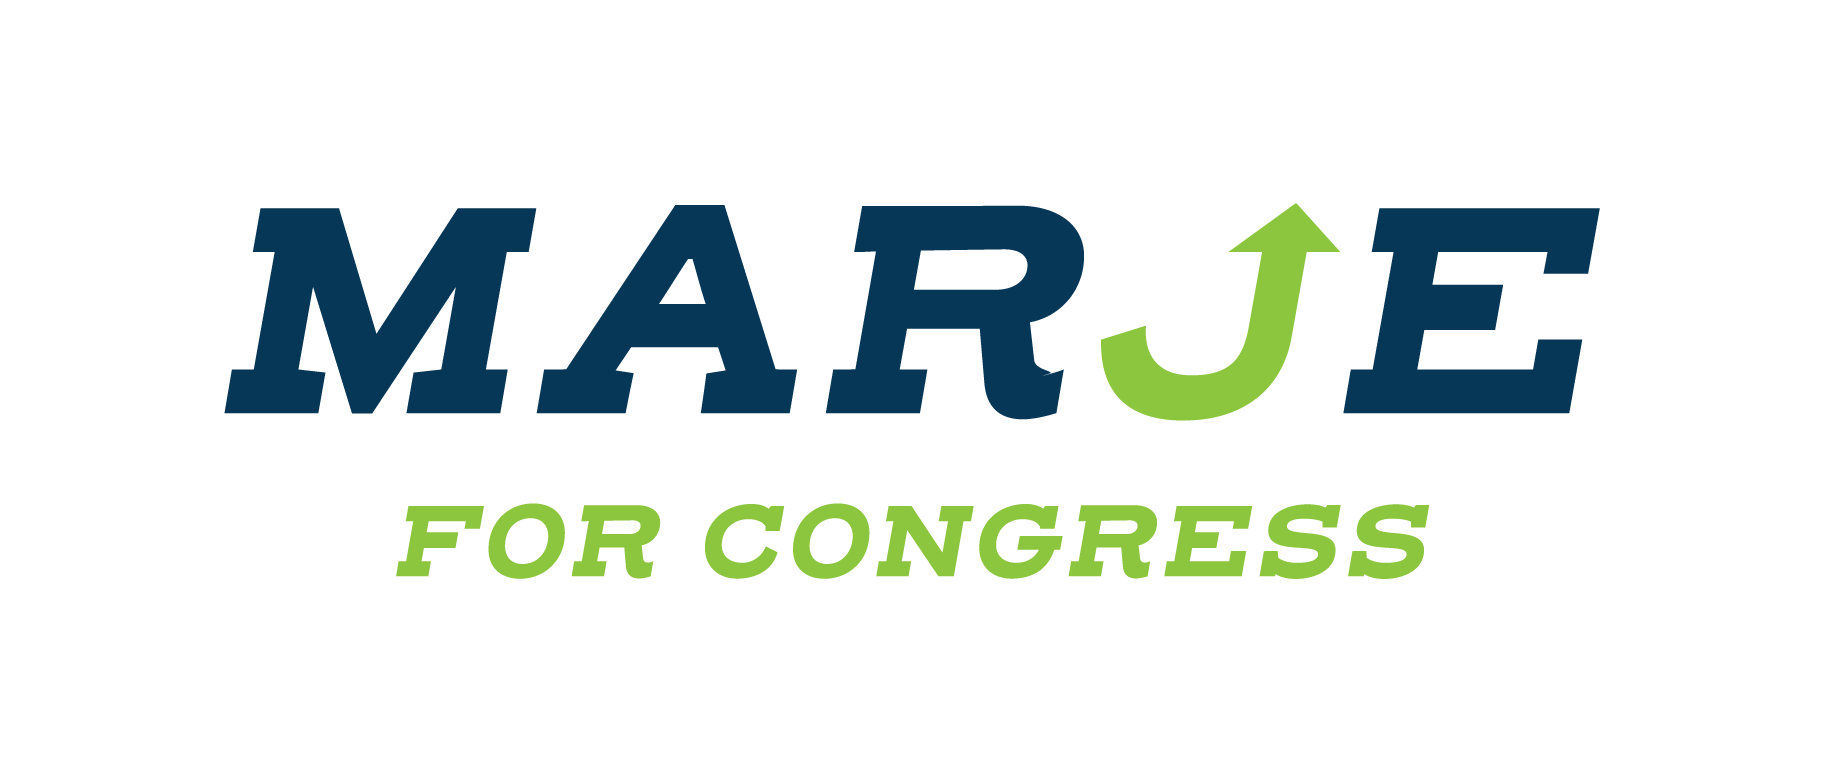 Marje For Congress